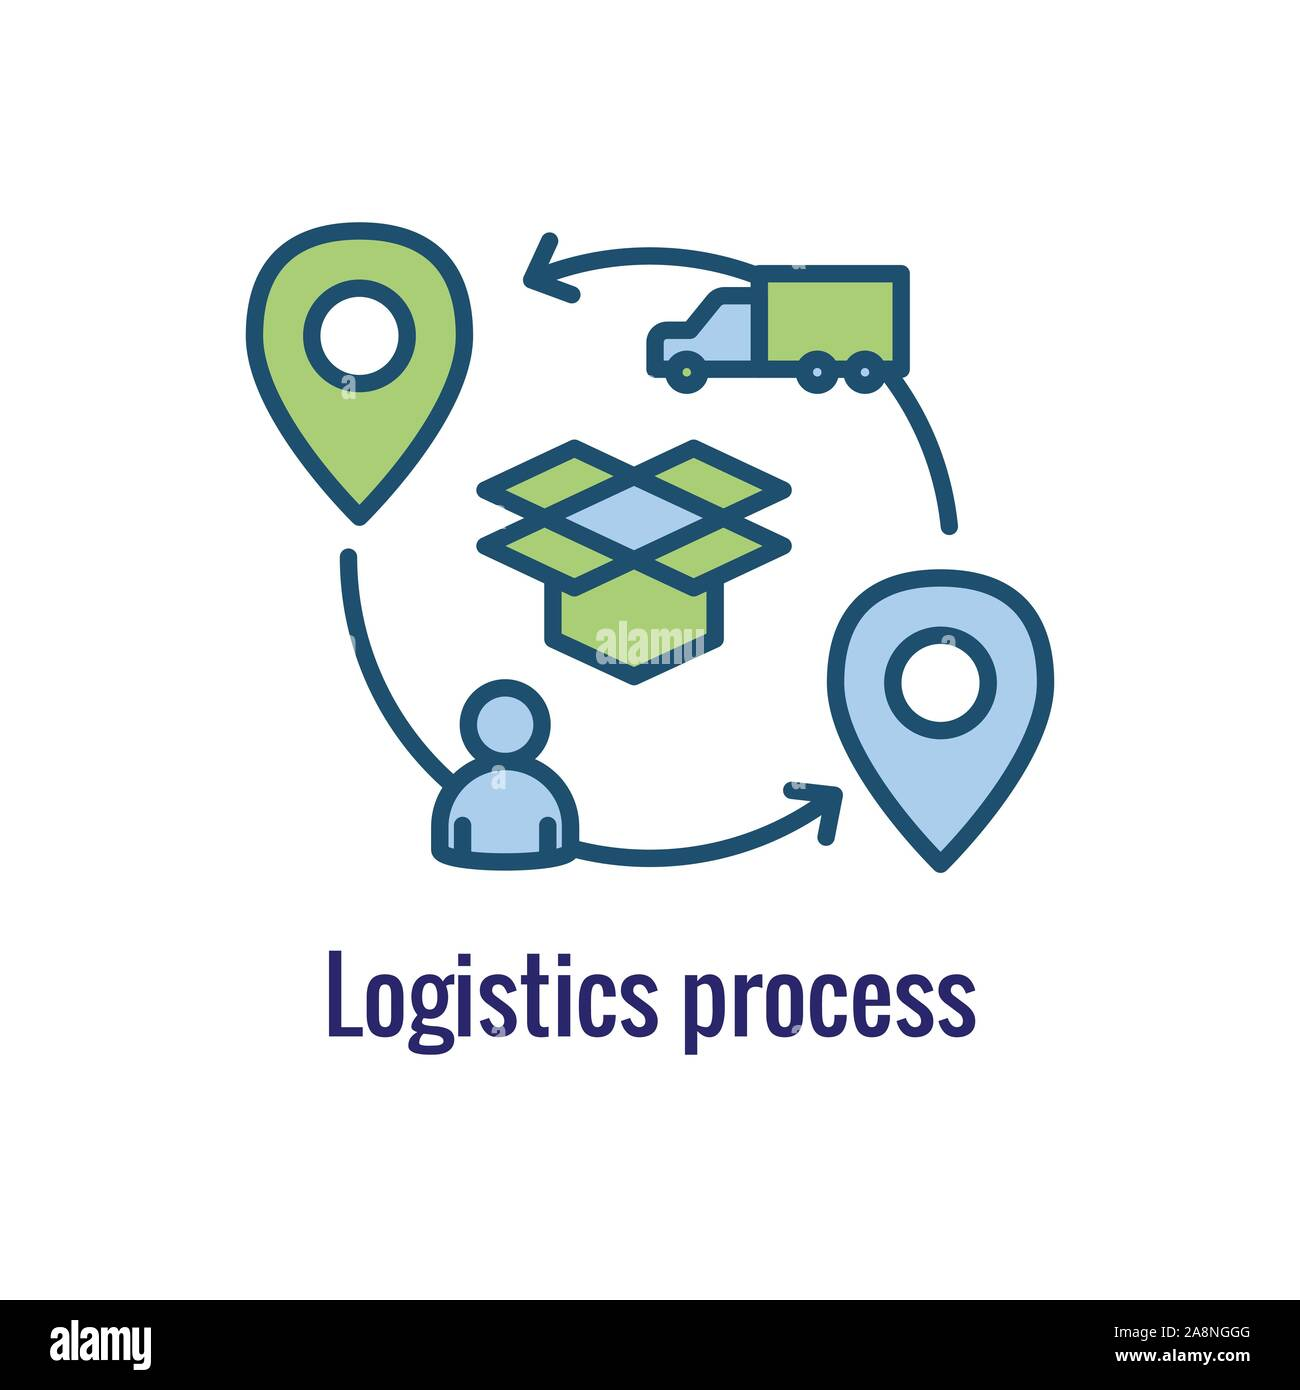 Logistics icon showing movement from 1 place to the next Stock Vector